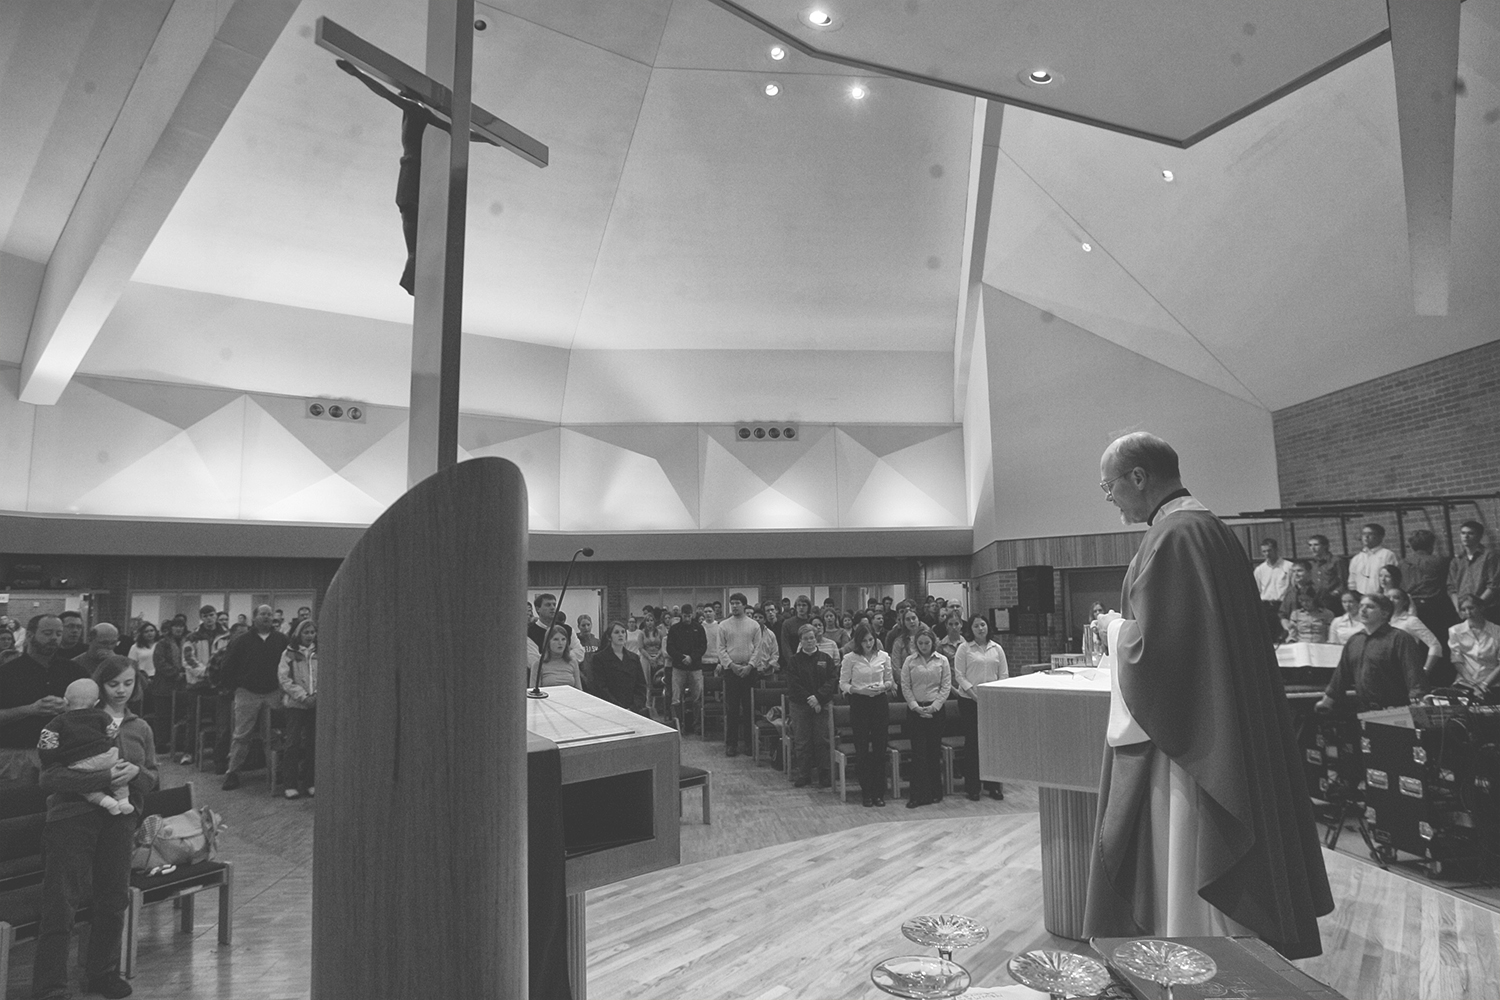 Father Edward Fitzpatrick conducts an evening mass on Sunday at the Newman Catholic Student Center. A UI study recently found a correlation between attending religious services and a longer life expectancy.